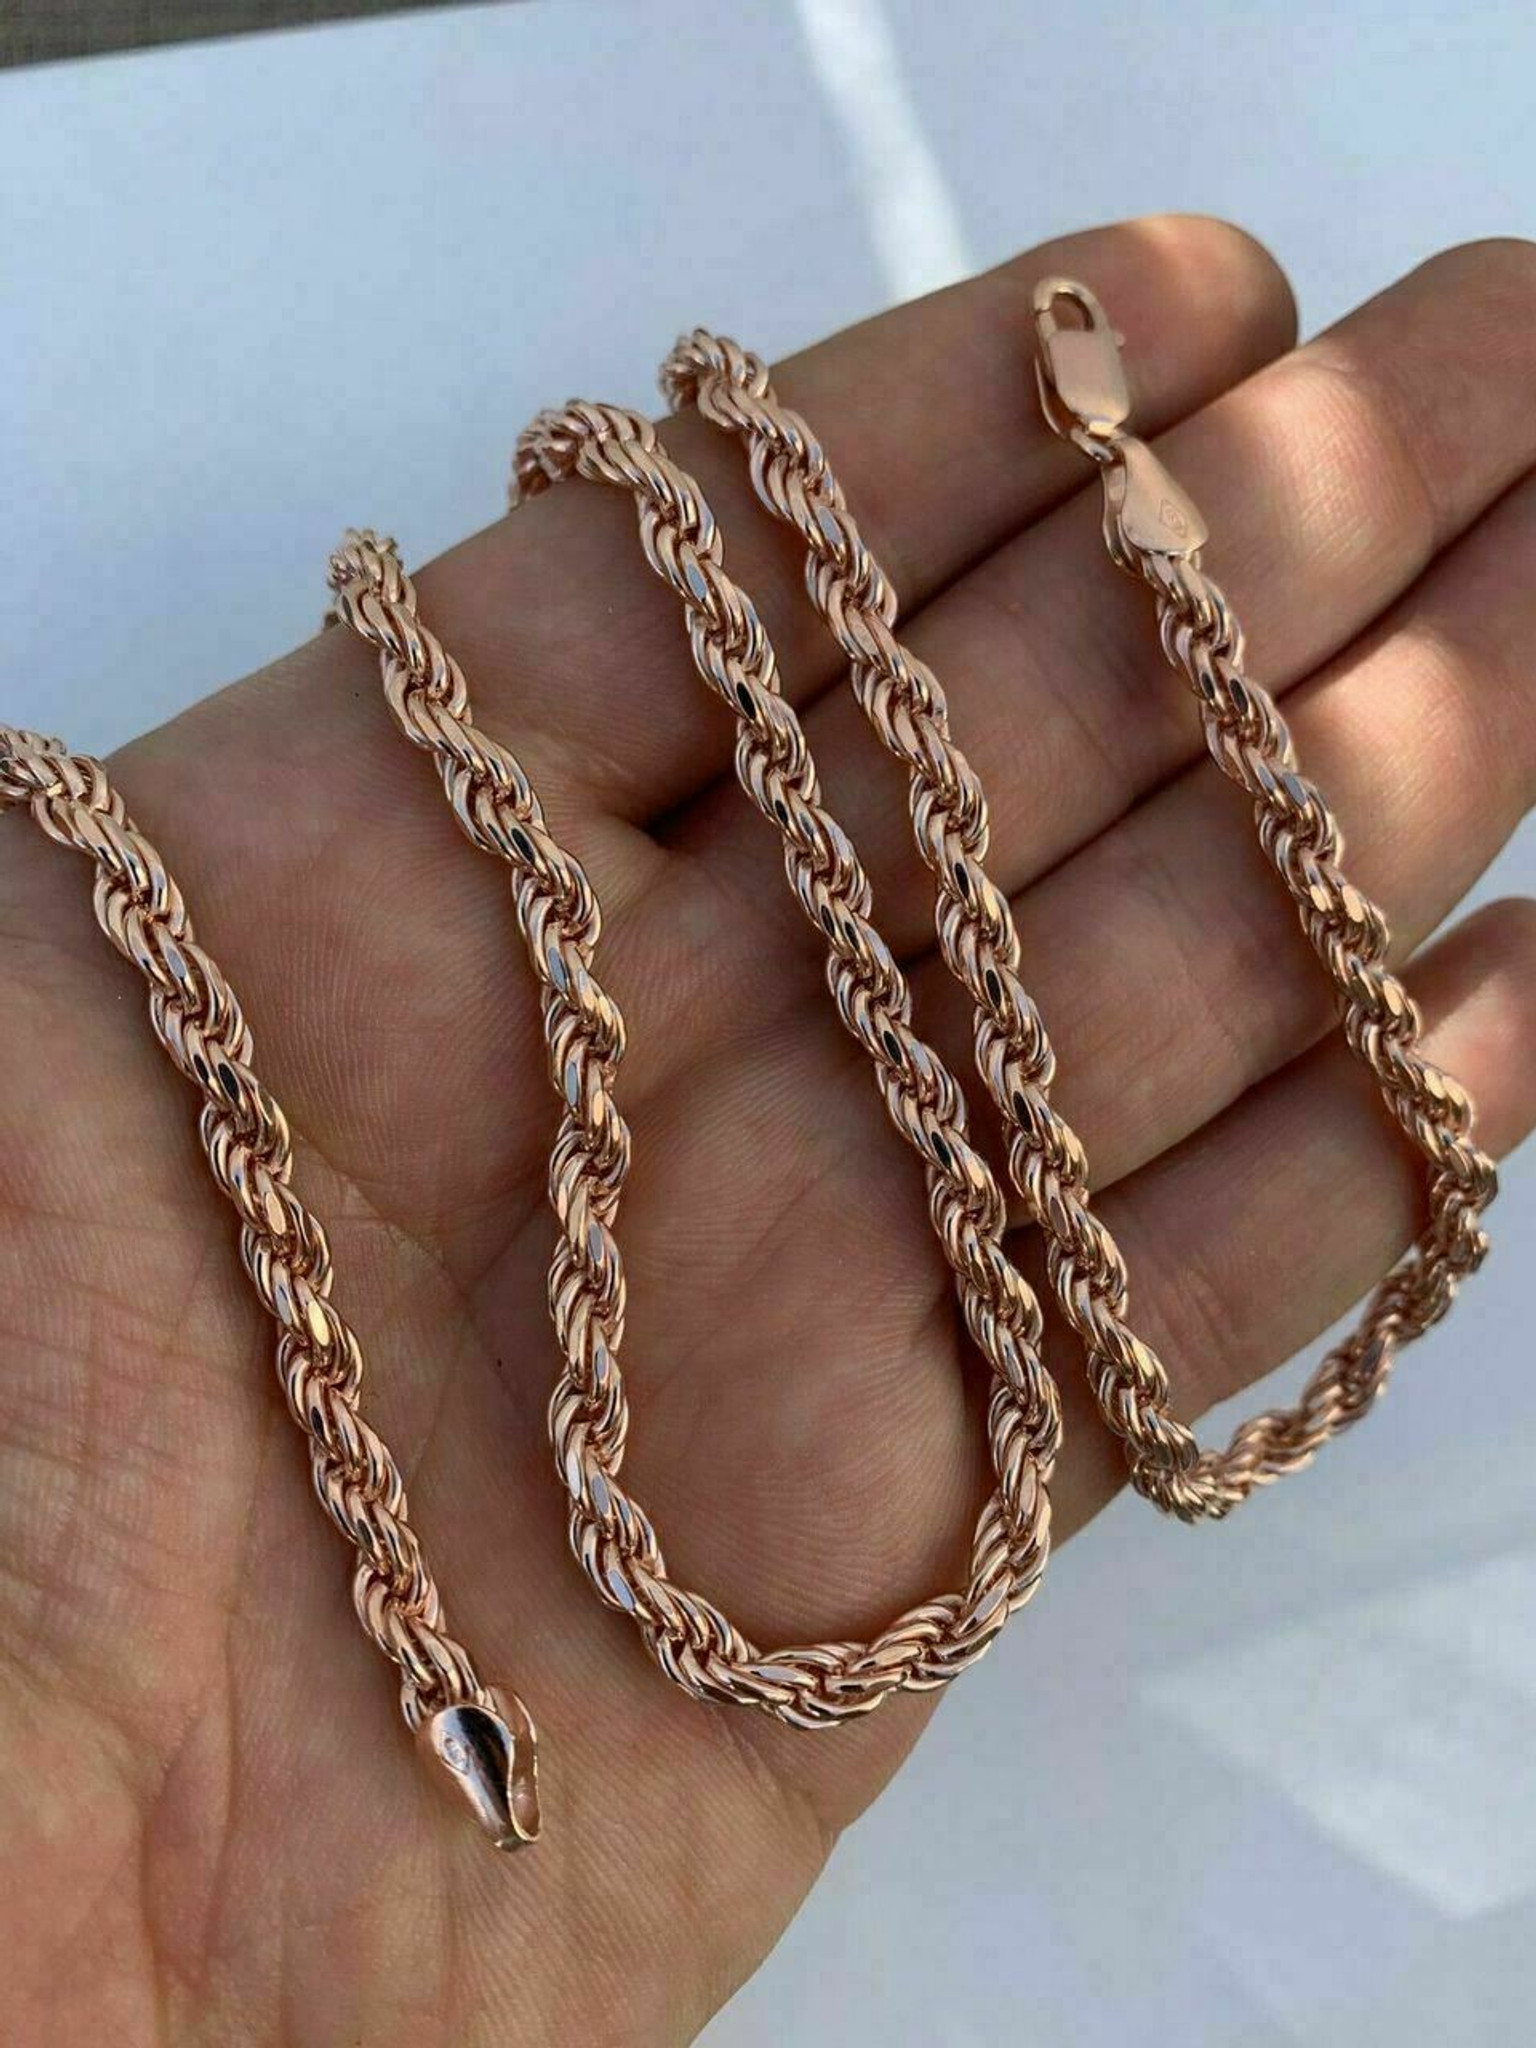 14k Rose Gold Over Solid 925 Sterling Silver Men S Rope Chain Heavy 5mm Italy